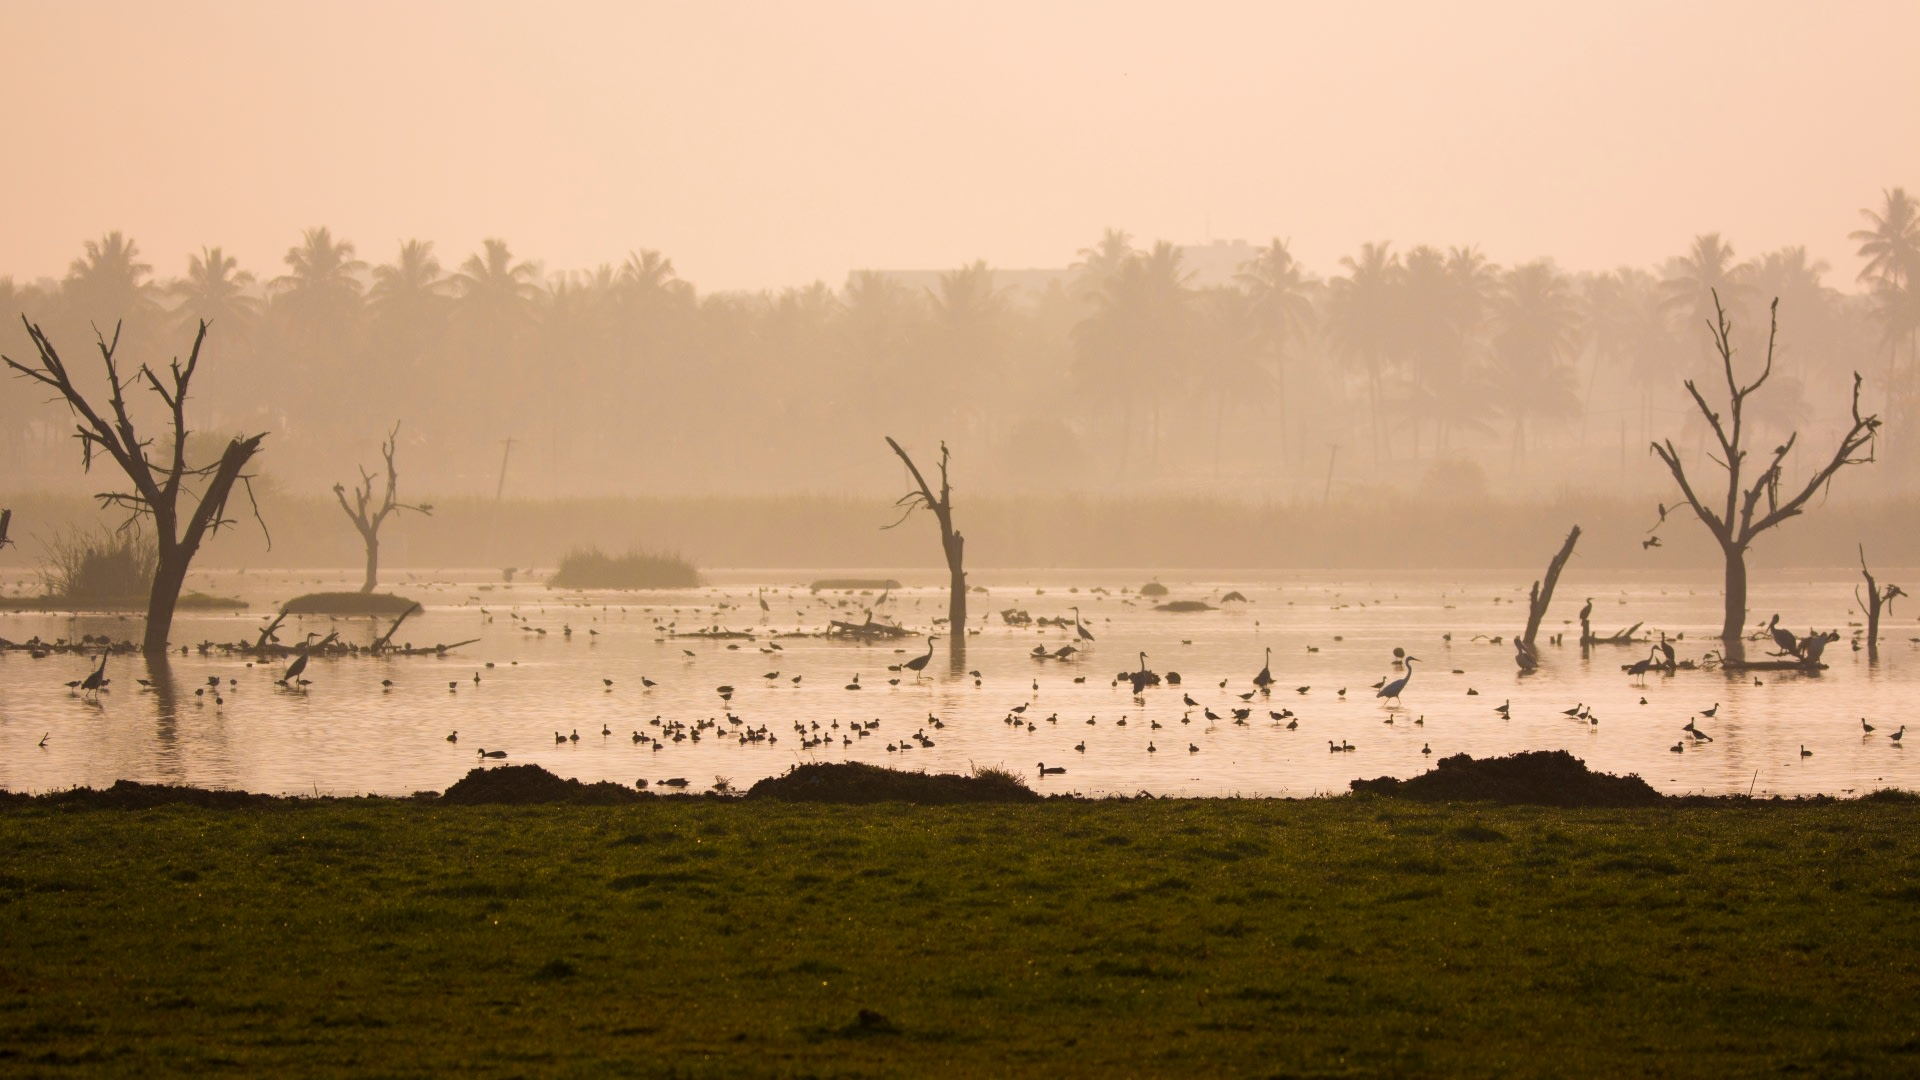 Dawn slowly warms the mist at Hoskote Lake and the many resident and visiting bird species begin their day. Photo: Samuel John  Ducks can be seen on the shore preening and preparing their feathers for the day's swim. Cover Photo: Samuel John